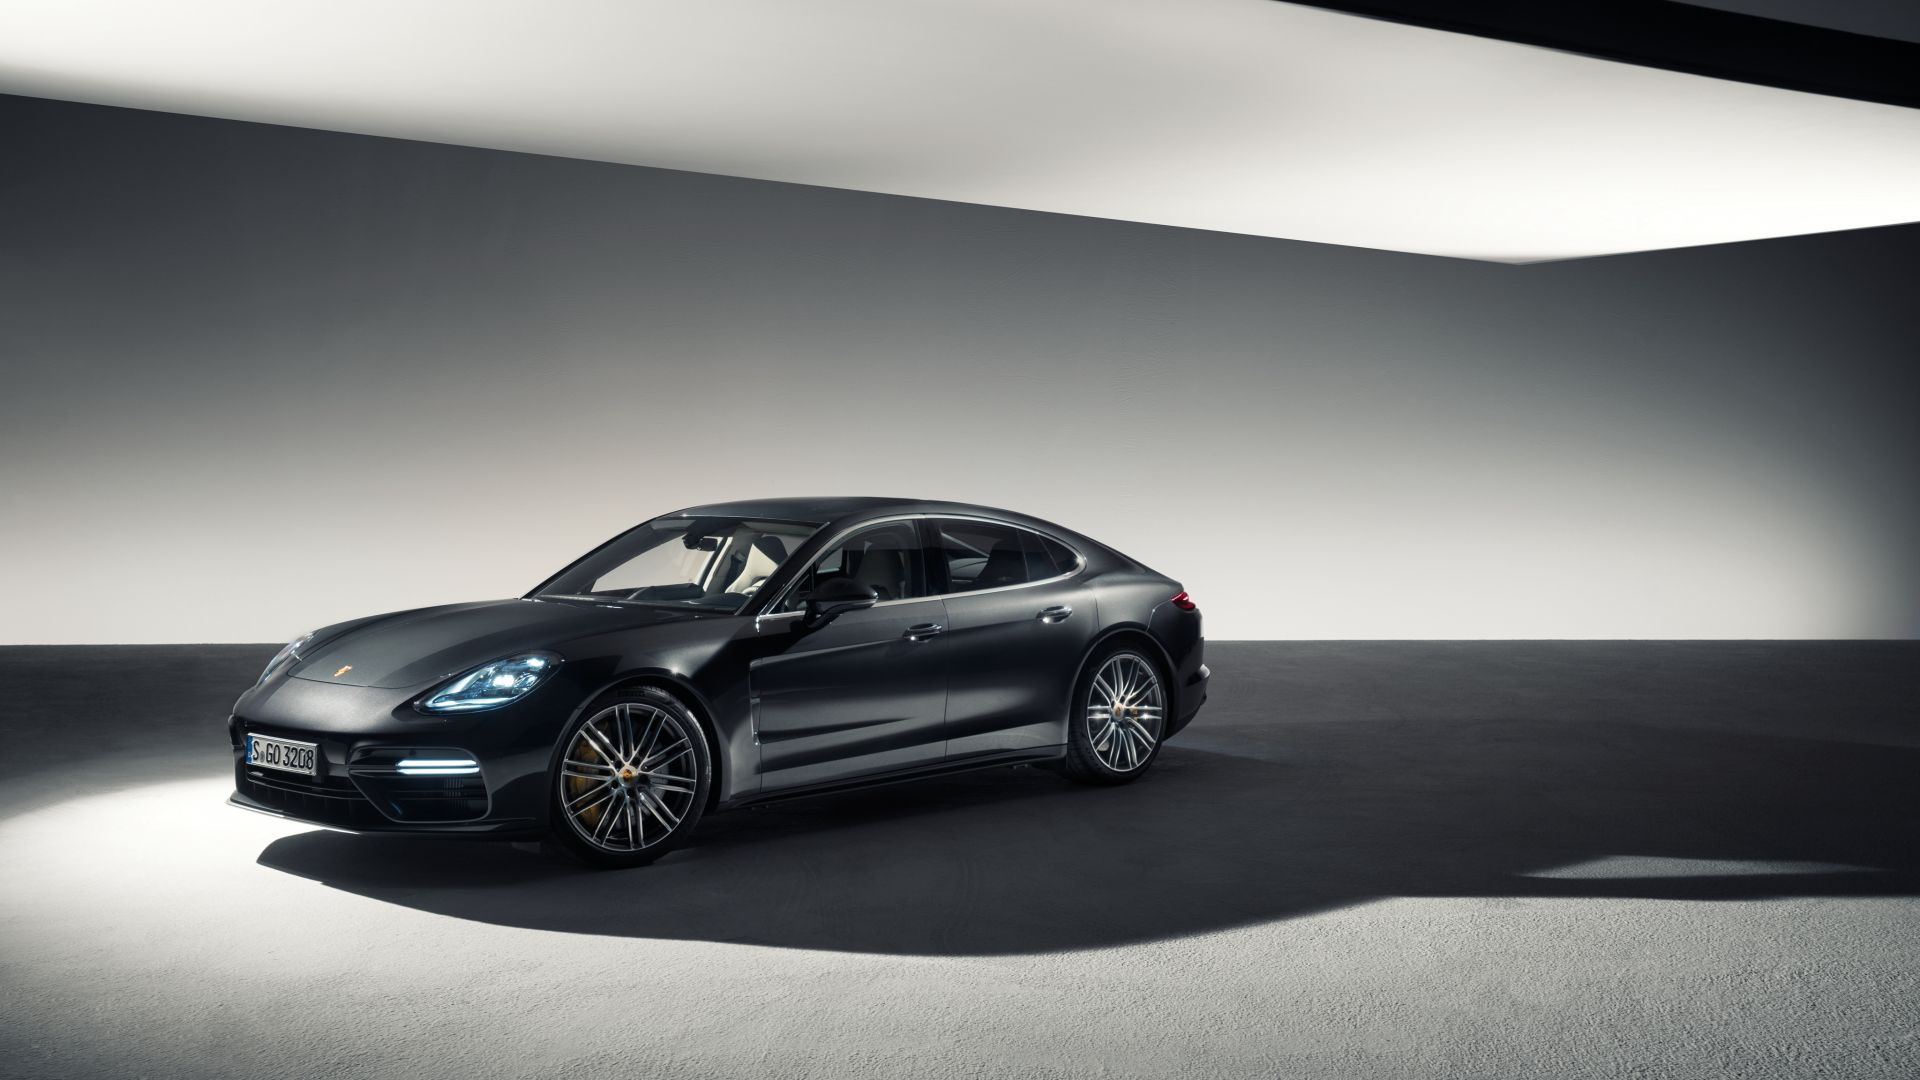 Порш Панамера Турбо, седан, черный, Porsche Panamera Turbo, sedan, black (horizontal)